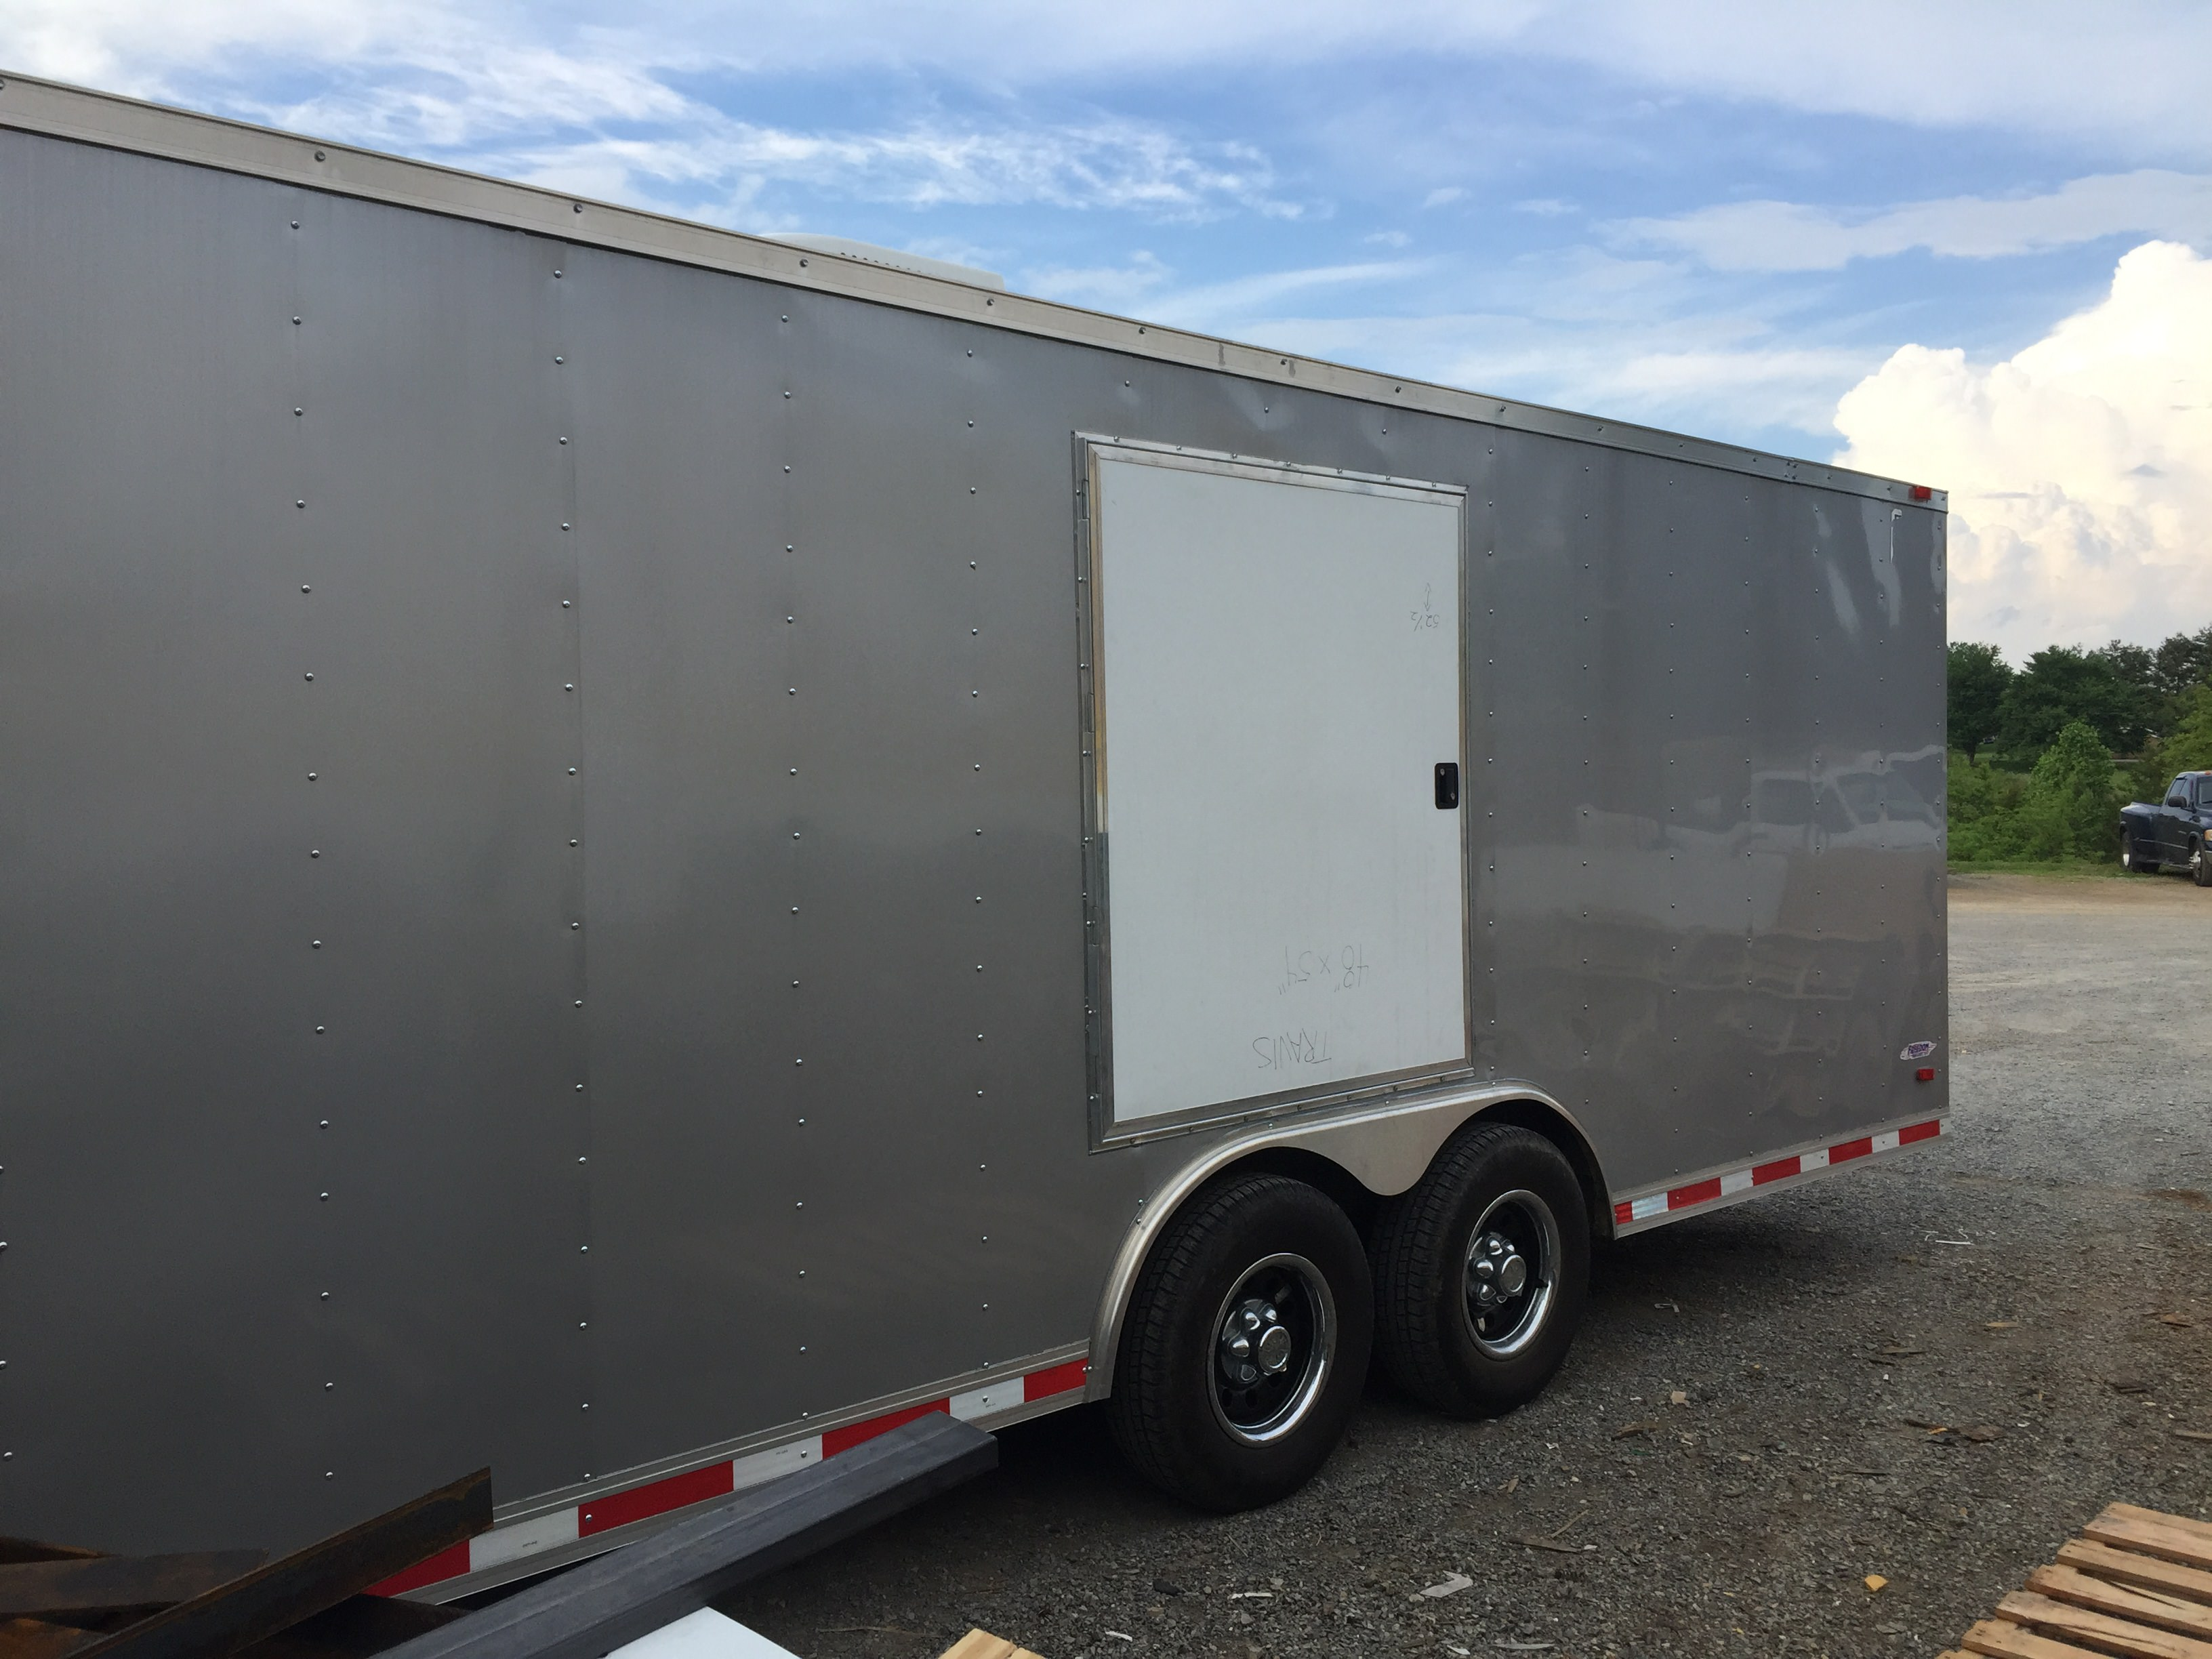 Trailer Repair Service Maintenance Pro Line Trailers Homesteader Wiring Diagram Drivers Escape Door Customization